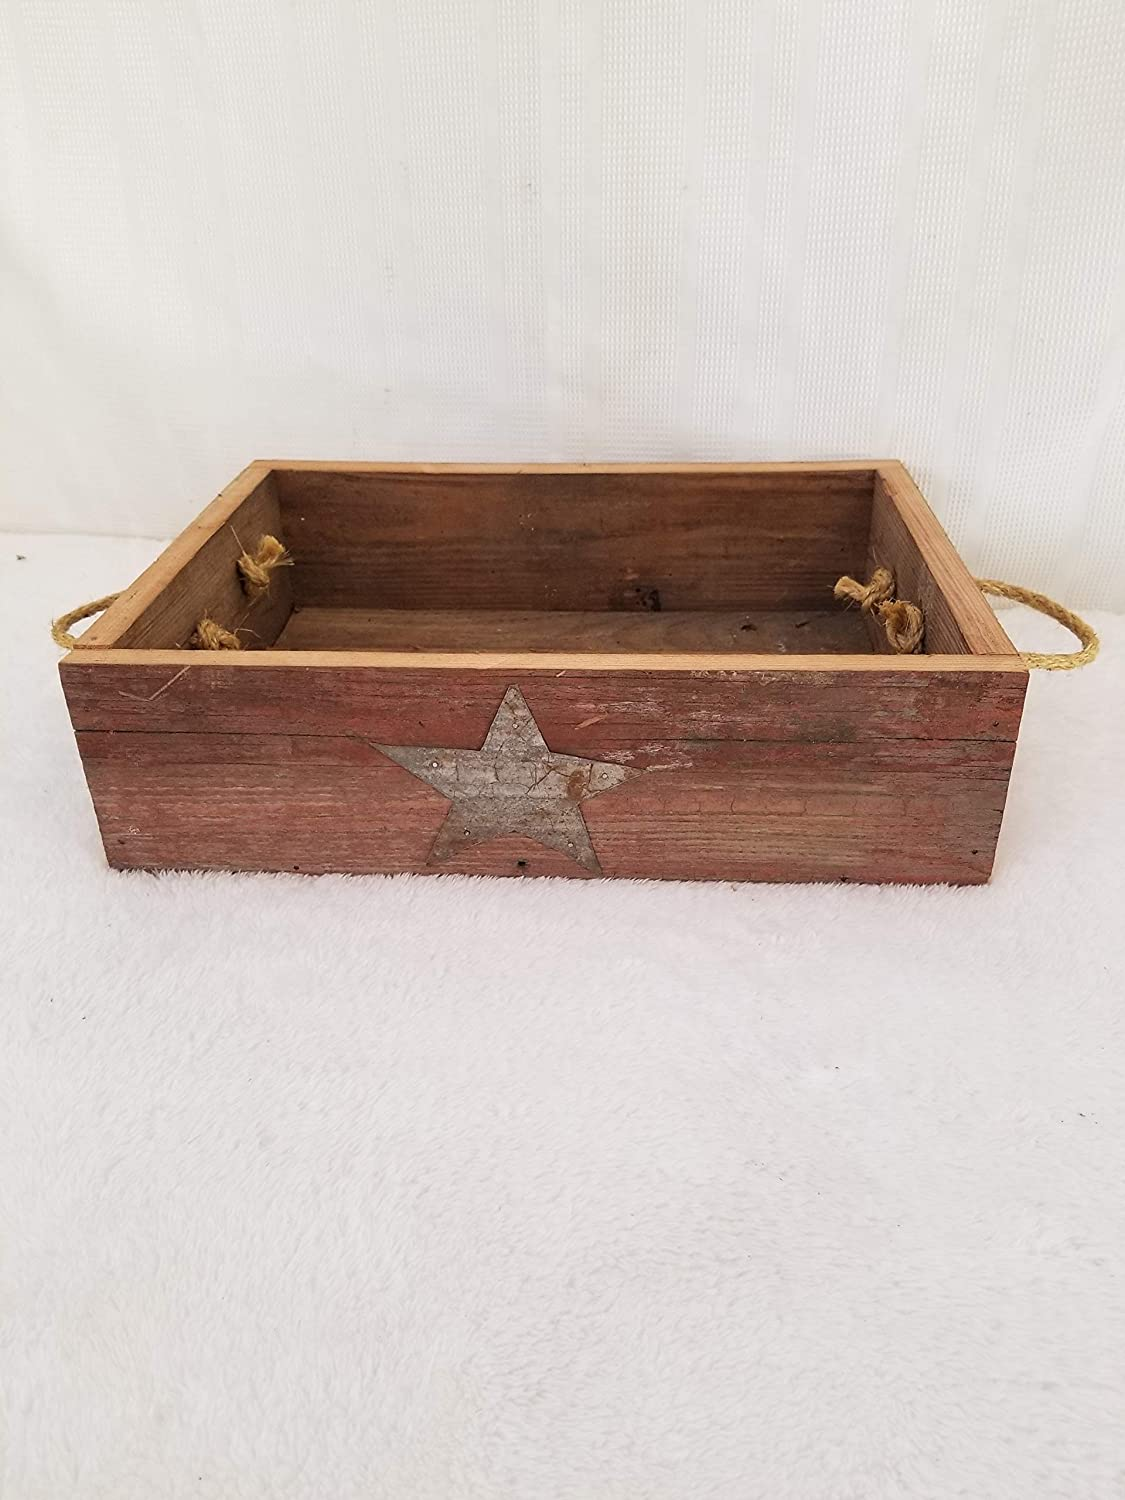 Barnwood Tray. This Amish Handmade Barnwood Tray Is a Unique Way to Accent Your Home Decor. You Can Add Many Different Primitive Items to It to Create a Stunning Masterpiece for Your Home Decor KENZIE' S STARS AND GIFTS